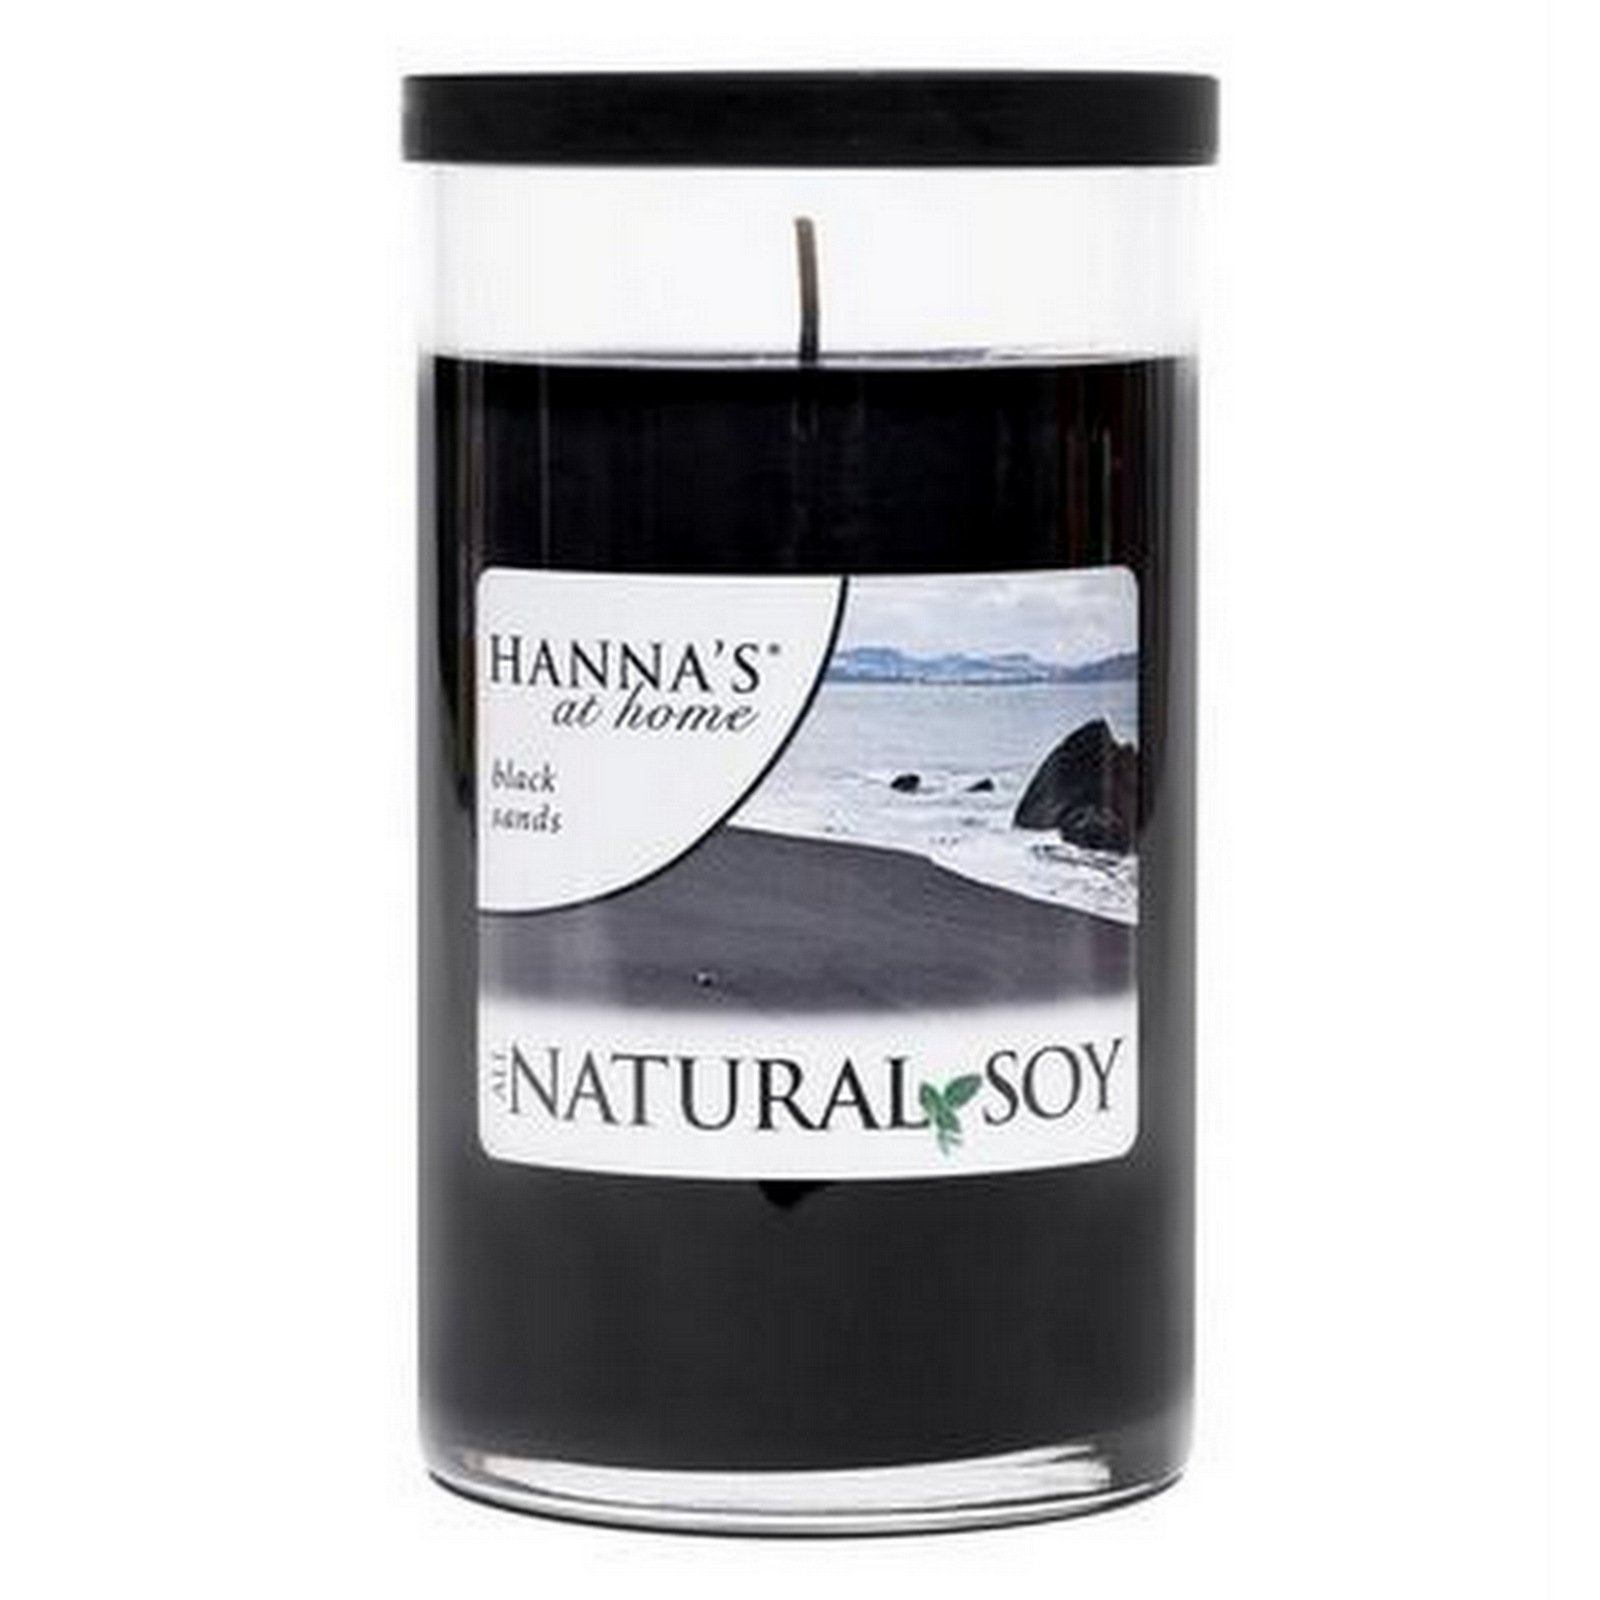 Natural Soy Black Sands Scented Soy Candle - Candlemart.com